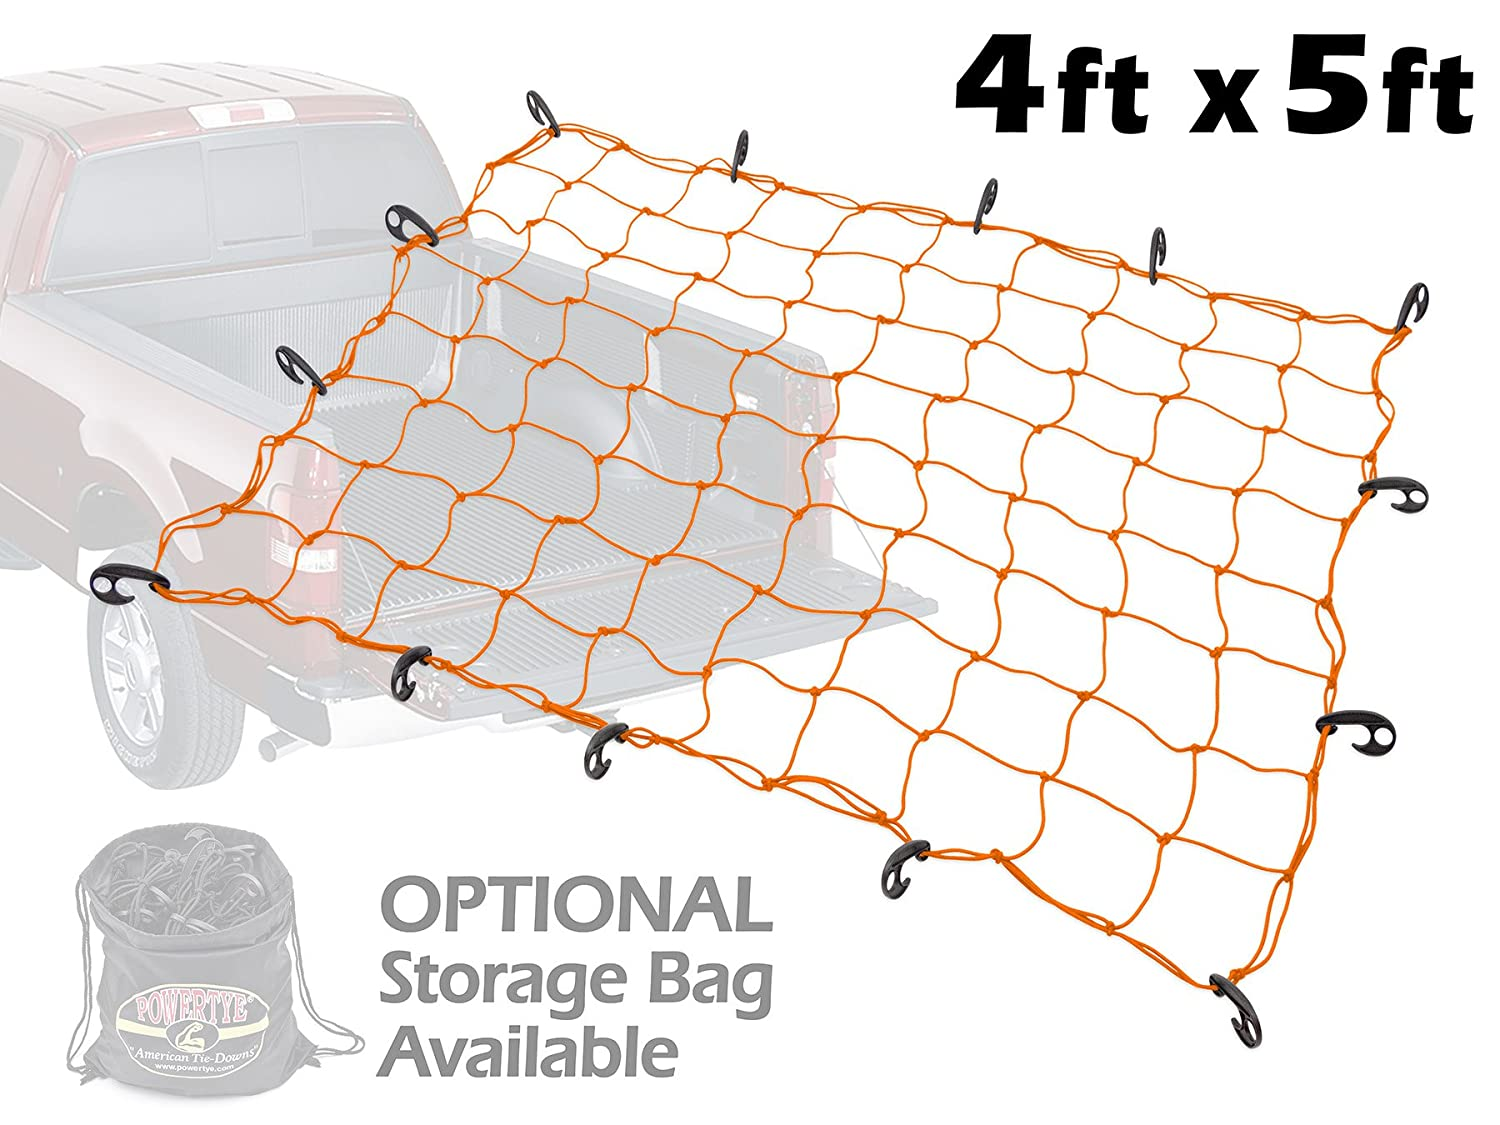 Orange Net 4333199466 4ft x 5ft PowerTye Mfg Truck /& Trailer Large Elastic Cargo Net with 14 Adjustable Hooks Includes Large Drawstring Net Storage Bag